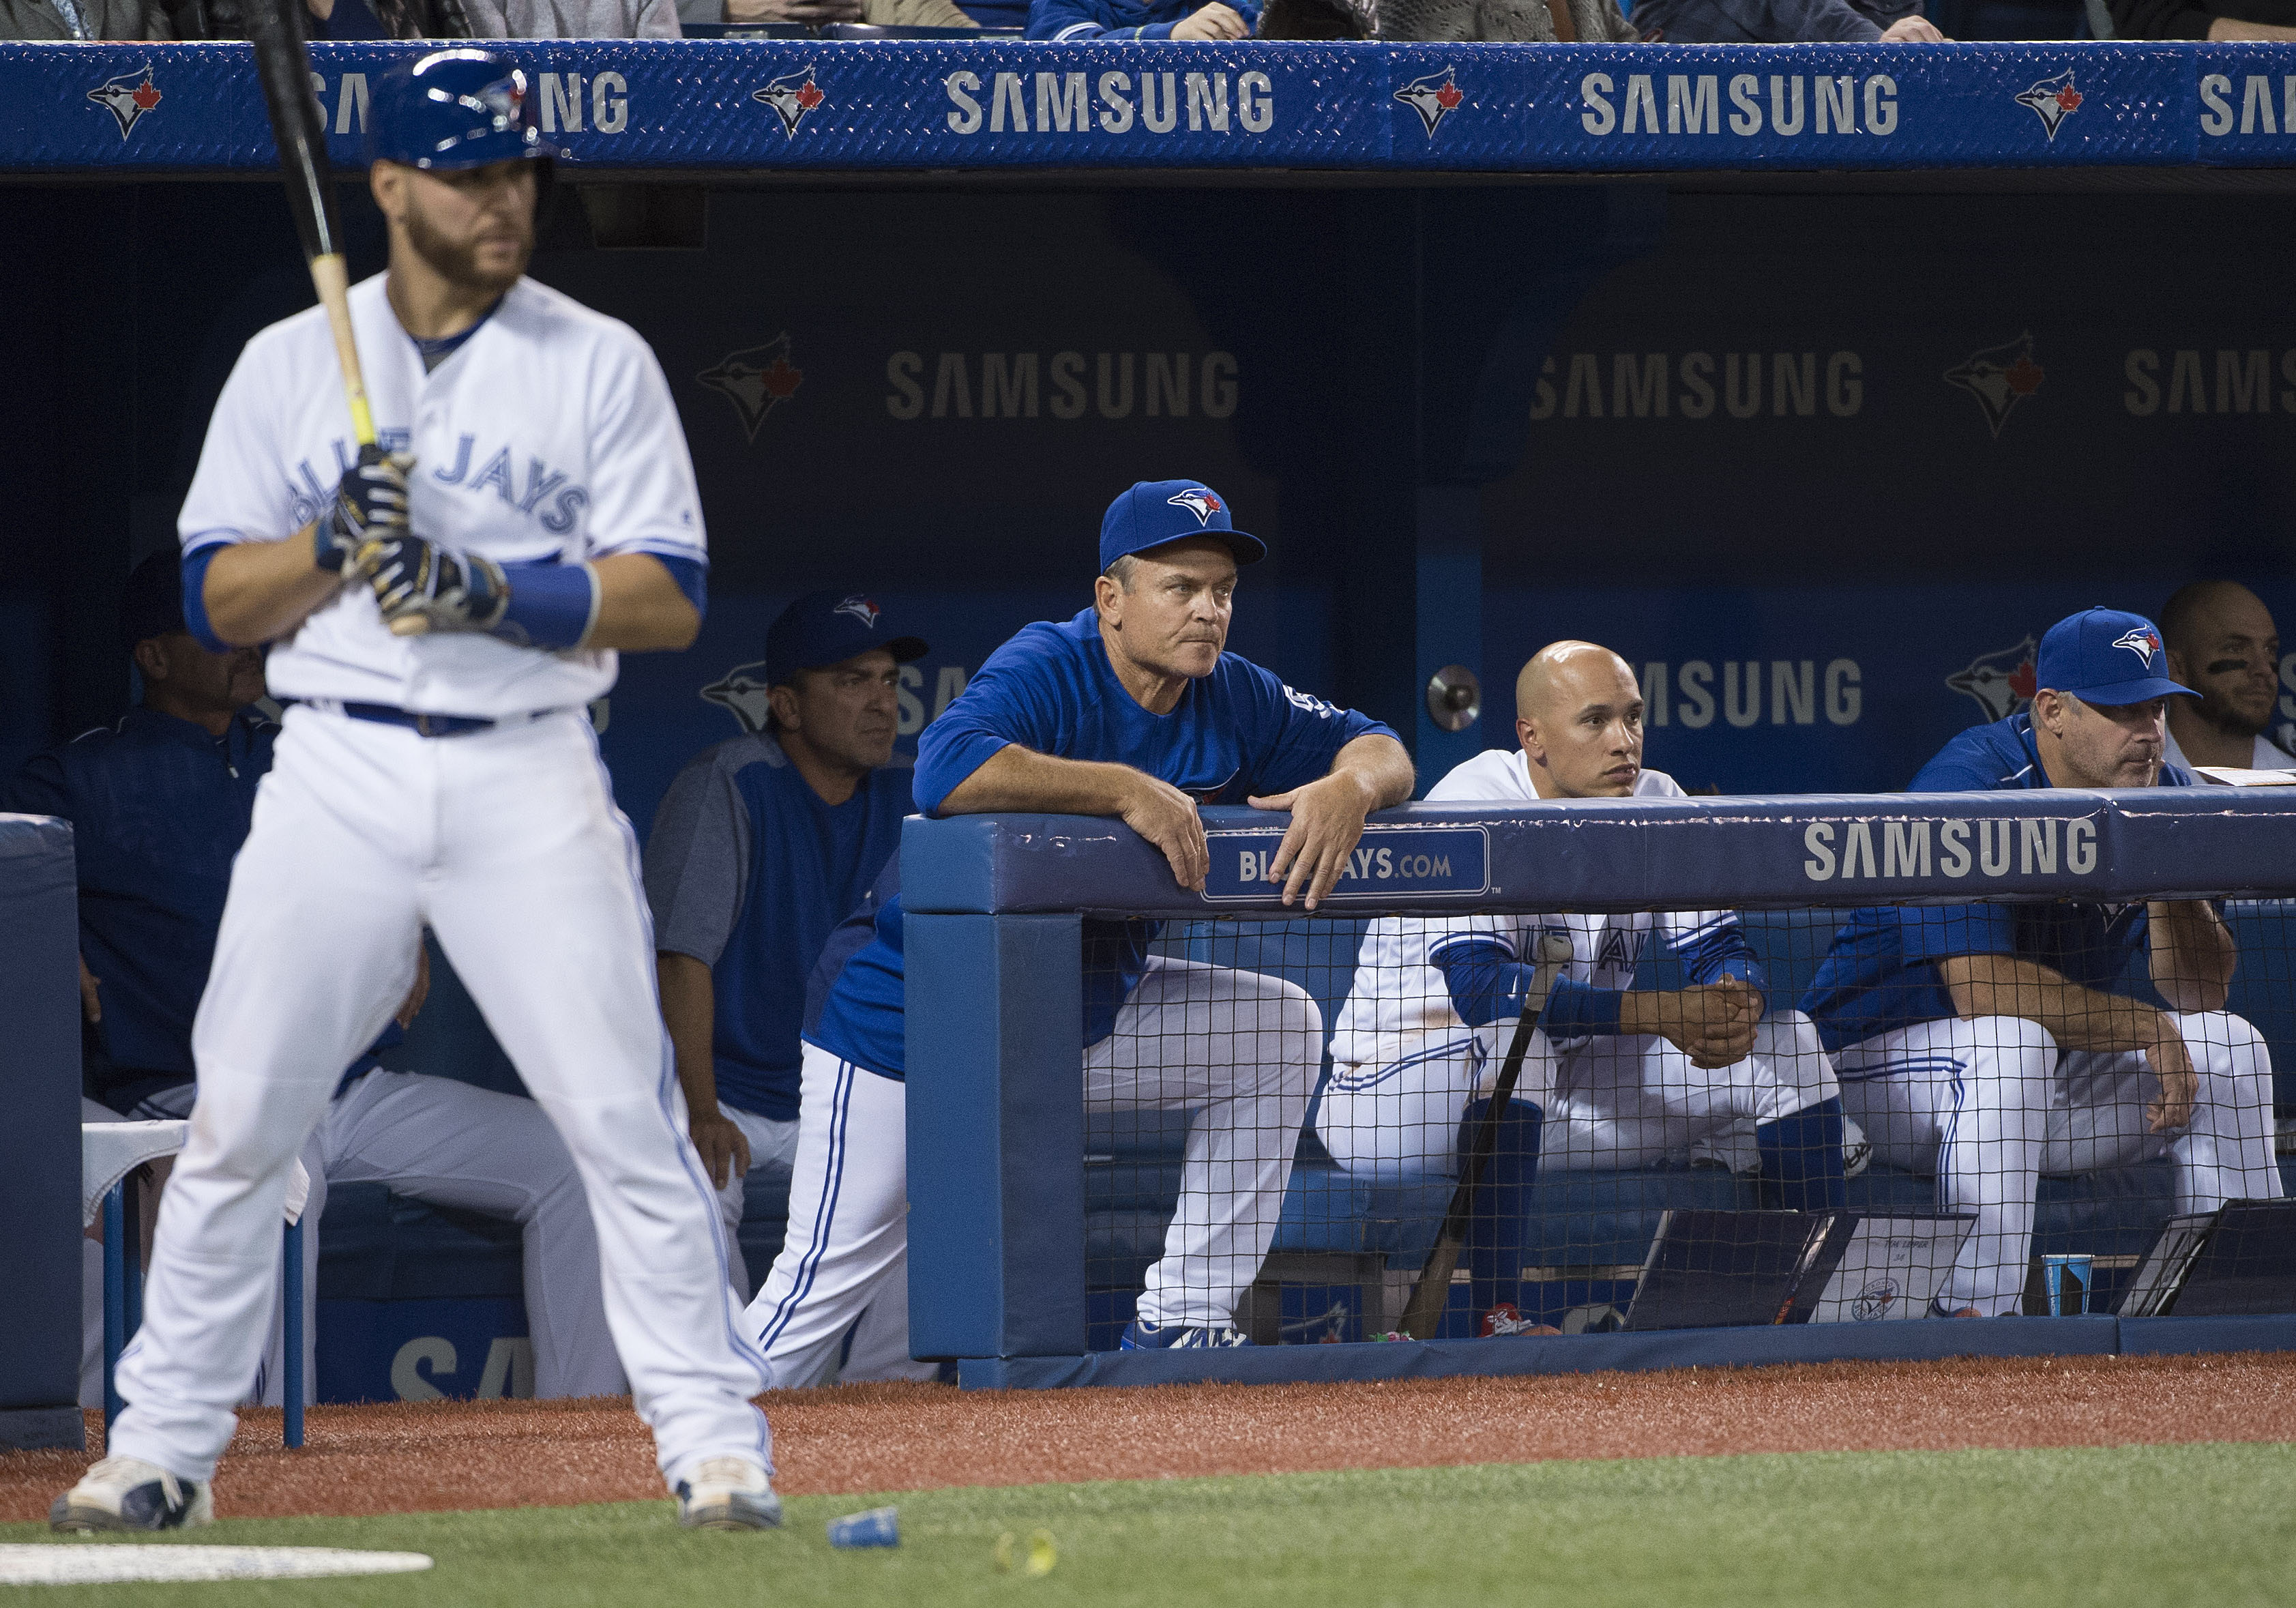 10011382-mlb-baltimore-orioles-at-toronto-blue-jays